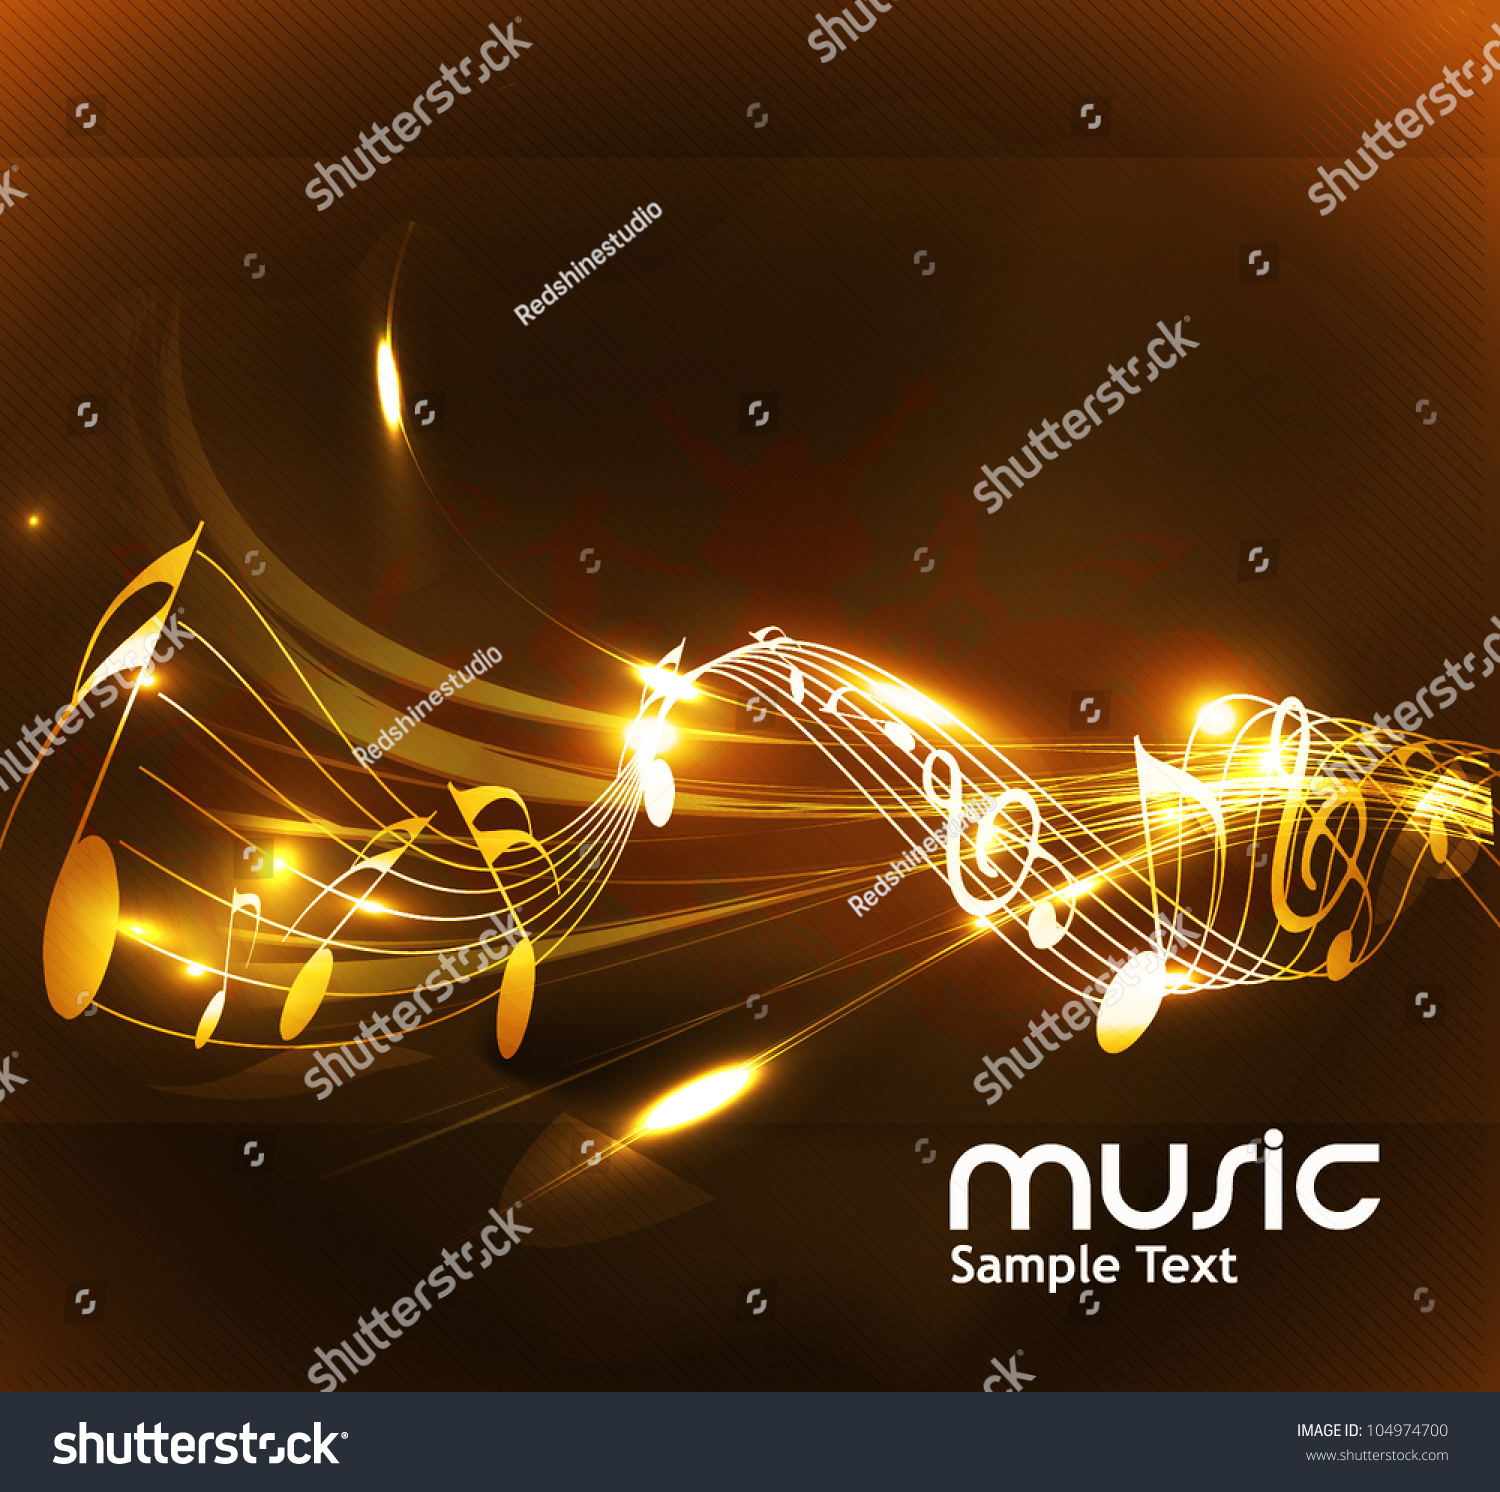 Copyright Symbol In Golden Color: Abstract Music Notes Design For Music Background Use